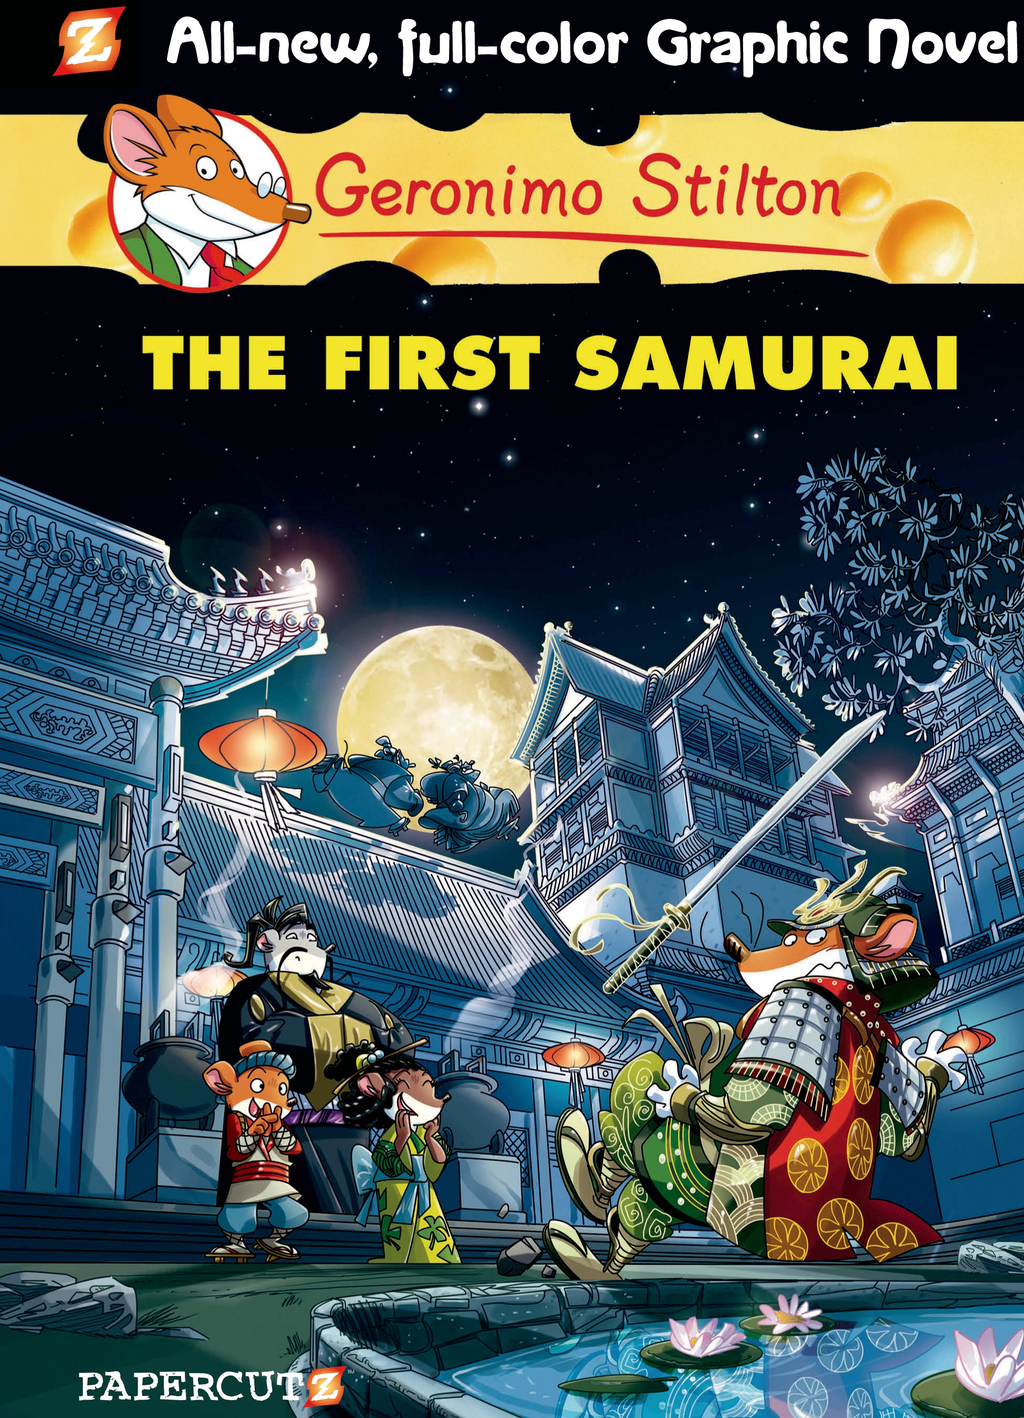 geronimo stilton ebook pdf free download